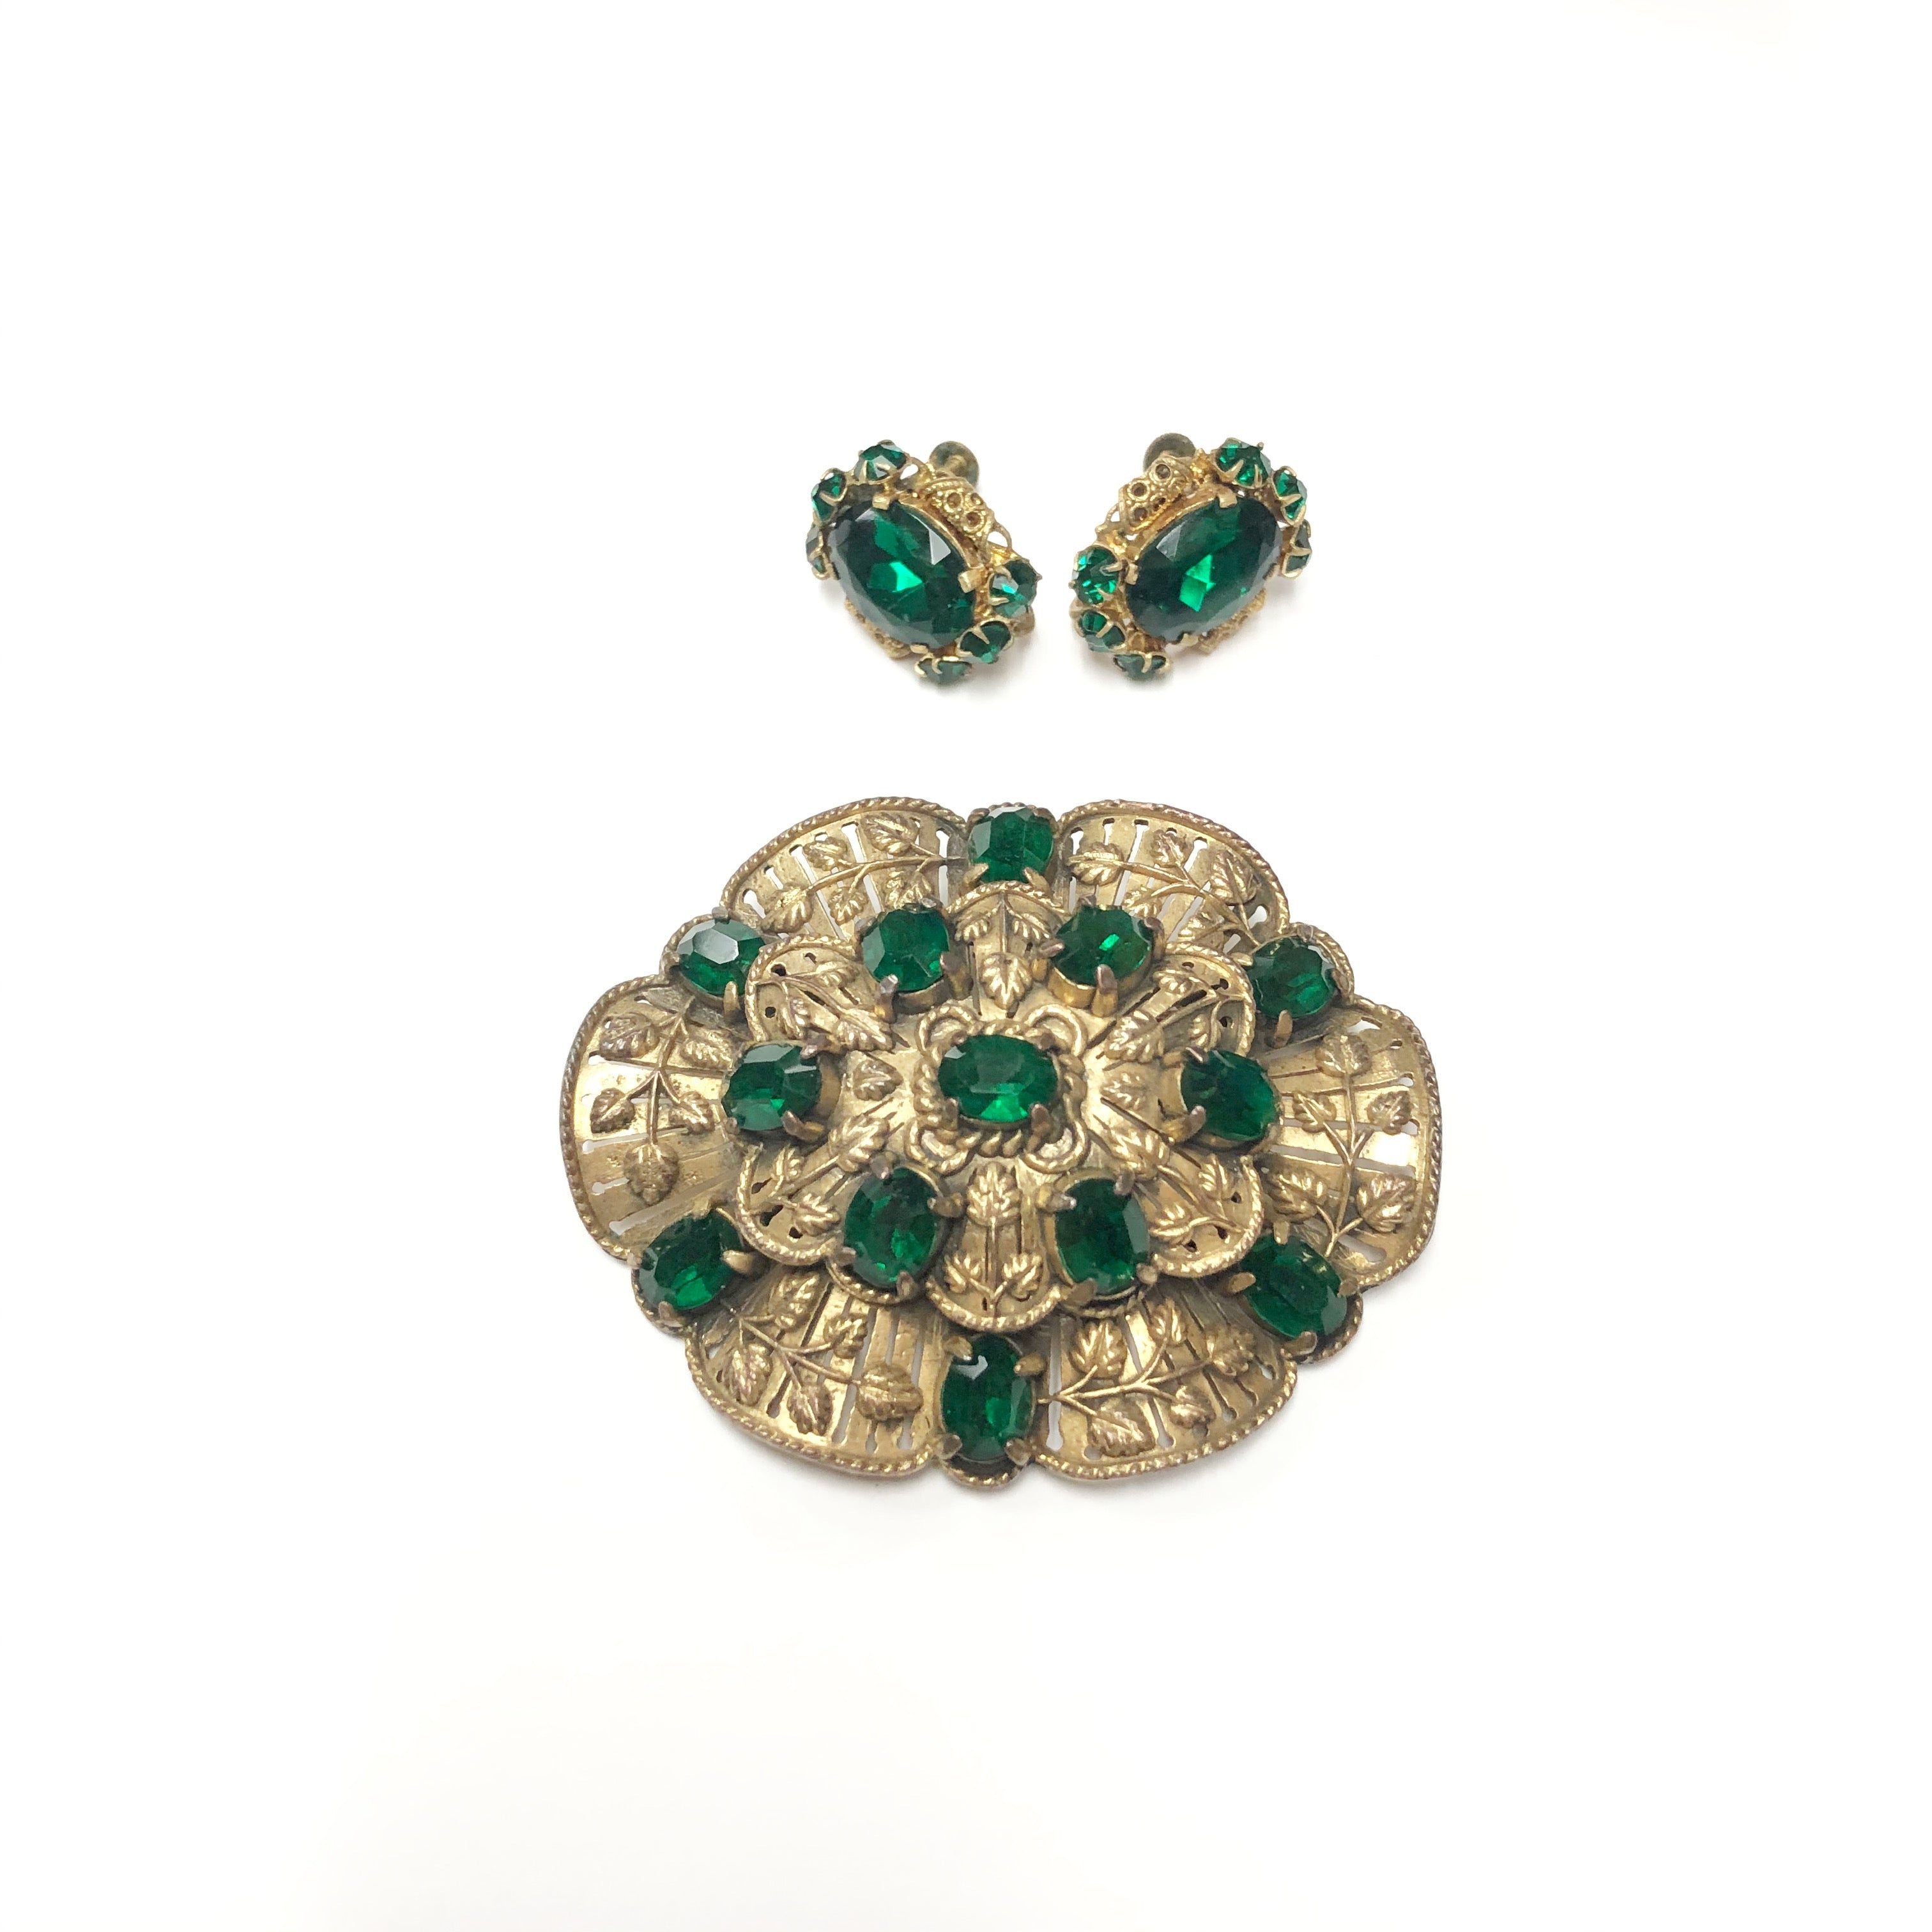 Vintage Gold and Rhinestone Brooch and Earring Set